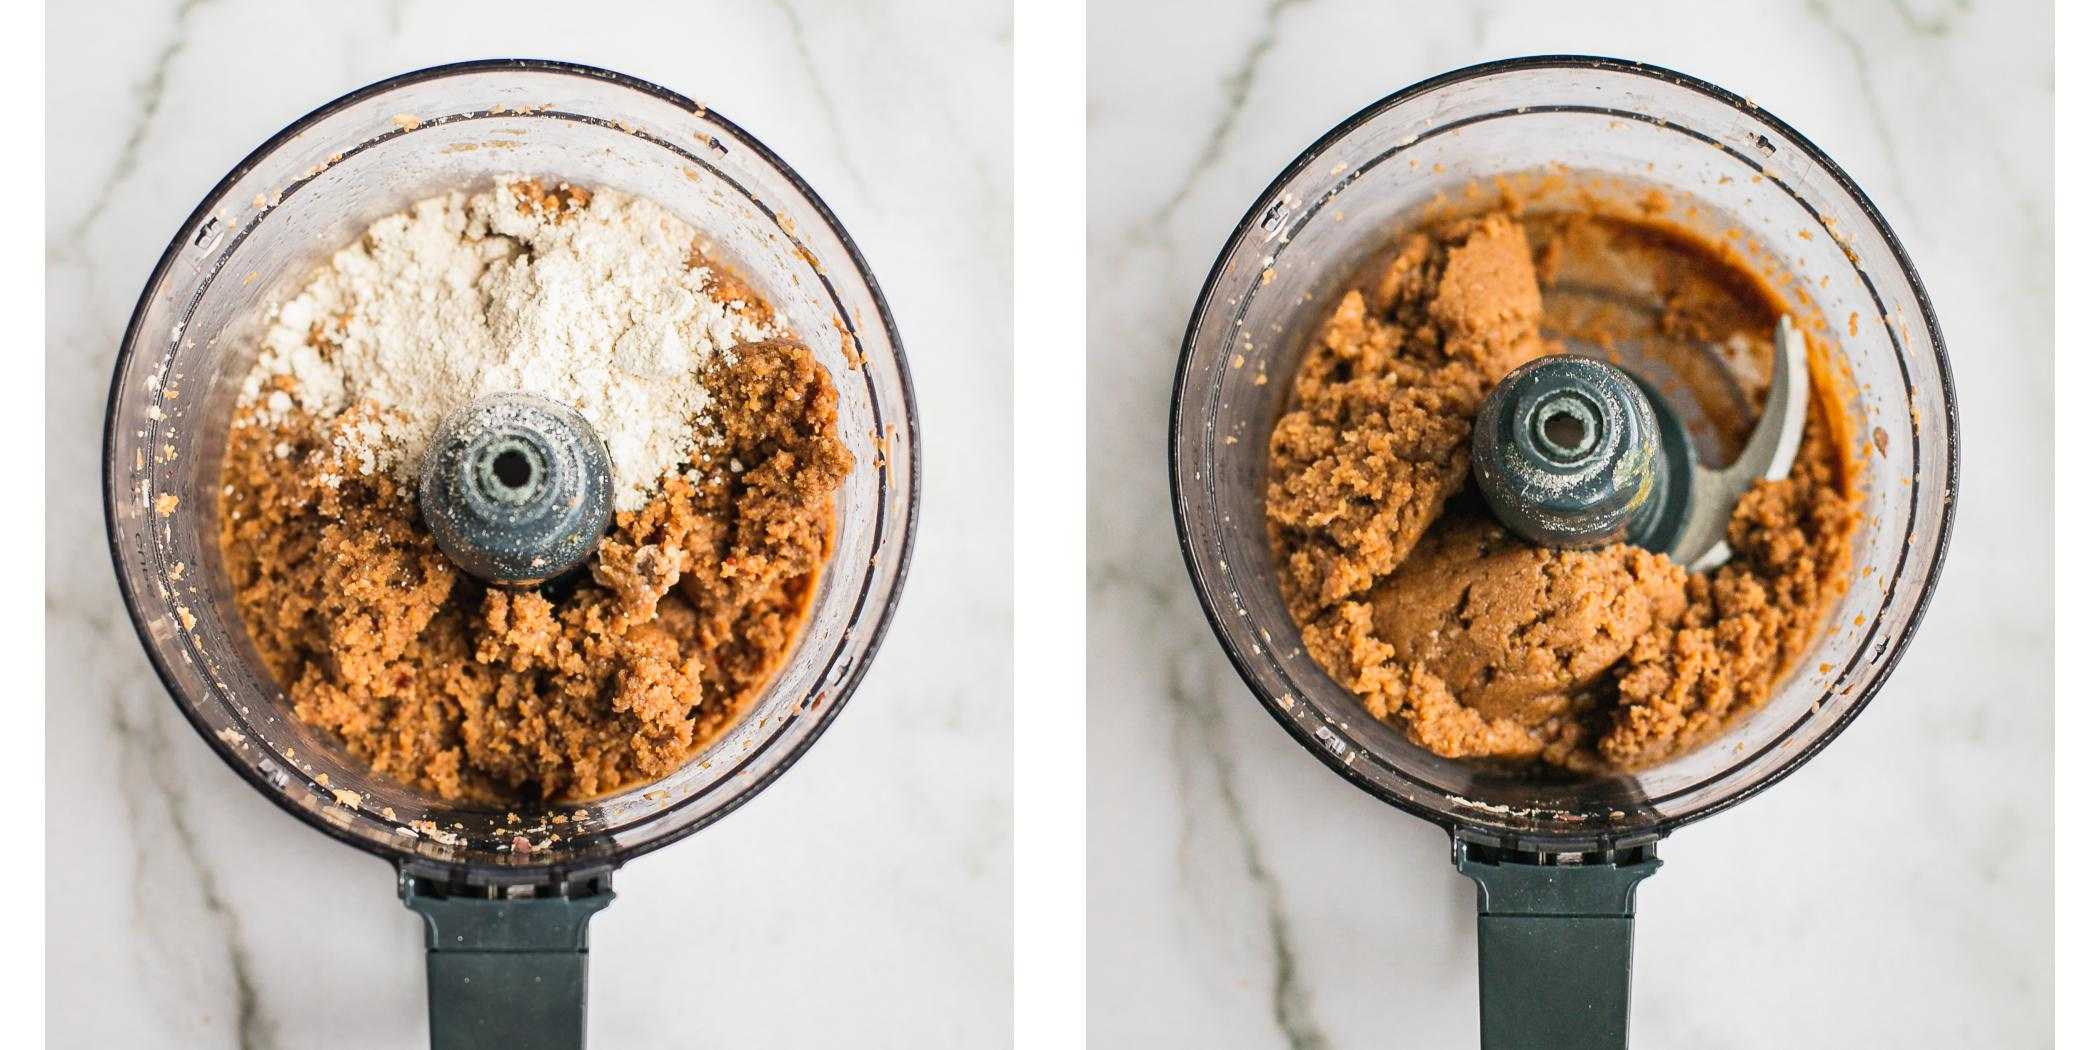 Step by step instruction on how to make healthy peanut butter fudge in a food processor